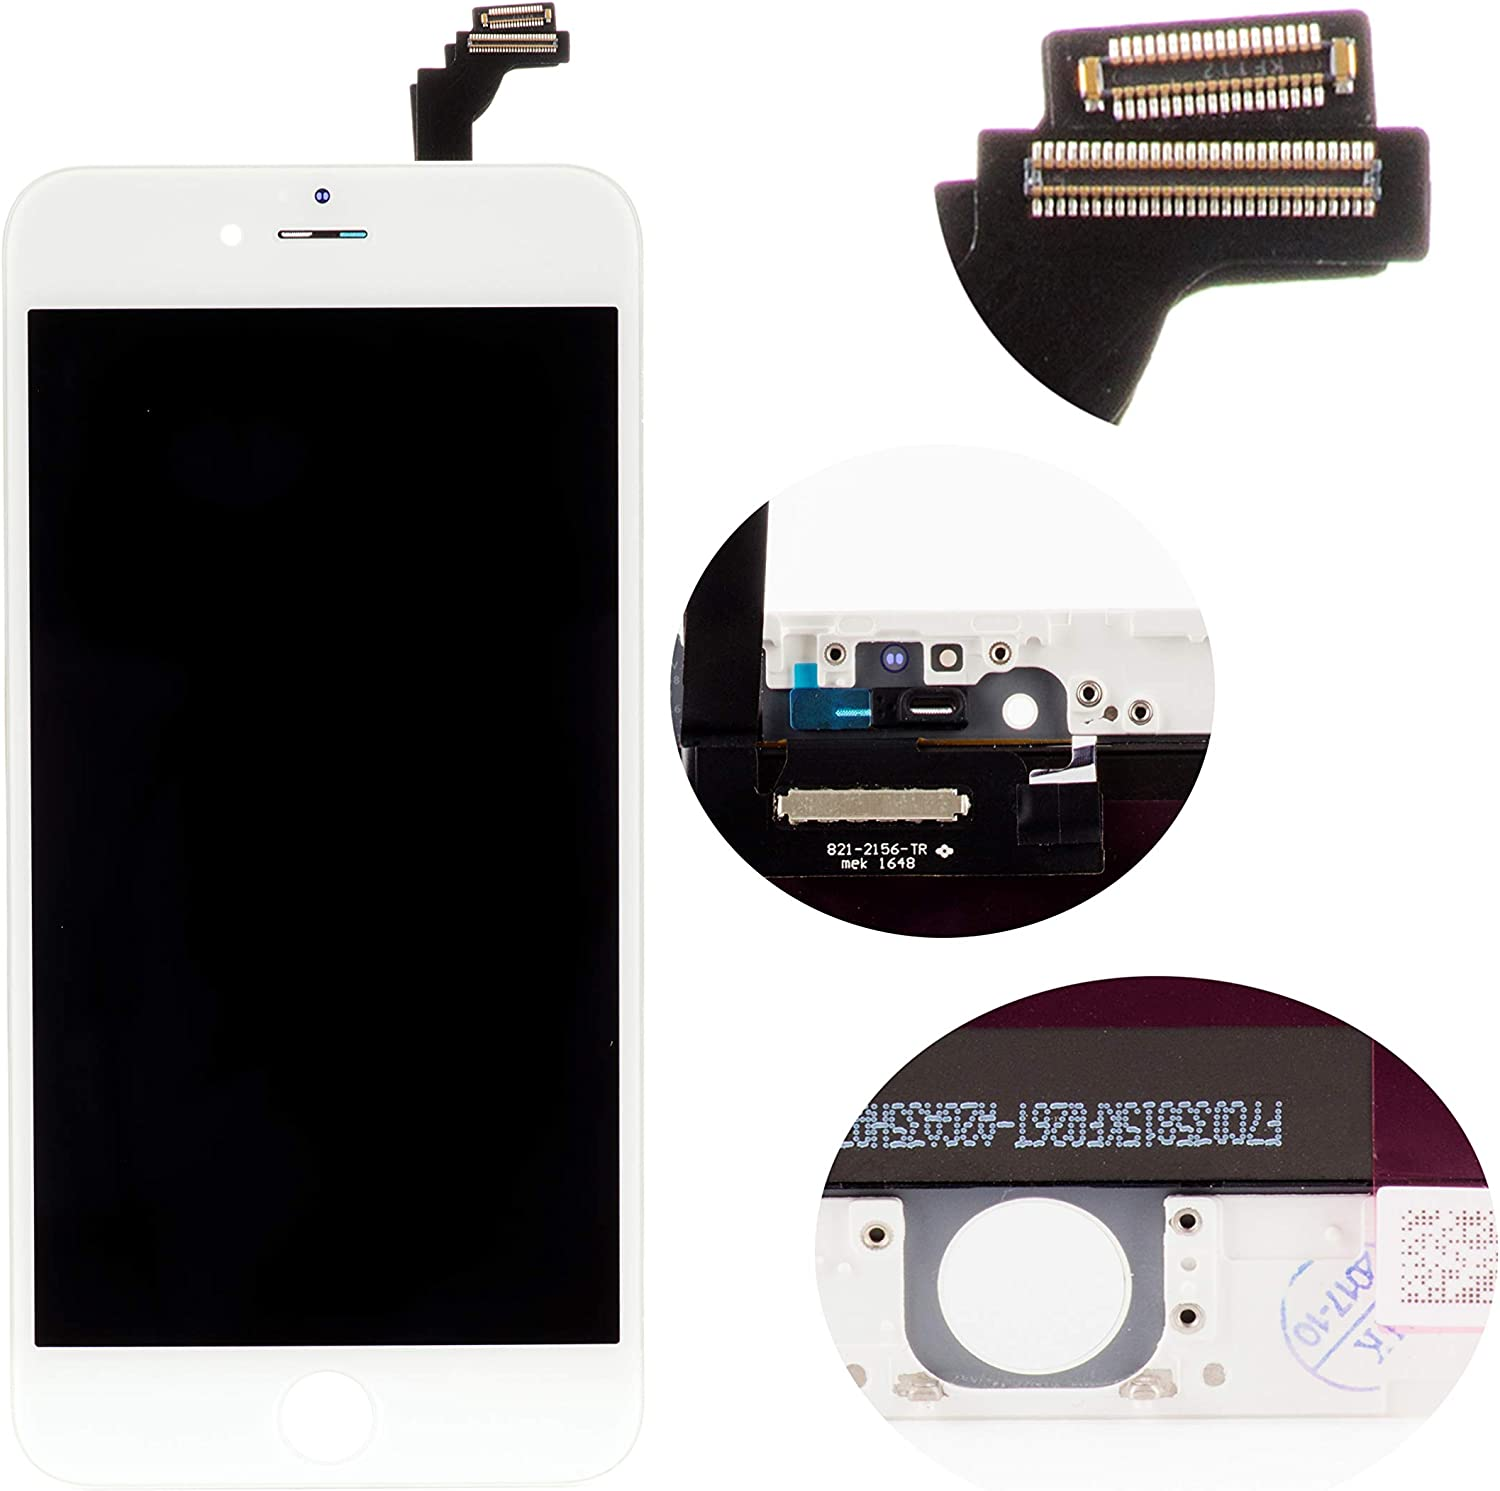 Front Glass LCD Screen Replacement Digitizer Assembly Frame Full Set Display Touchscreen for iPhone 6 Plus 5.5 Inches White